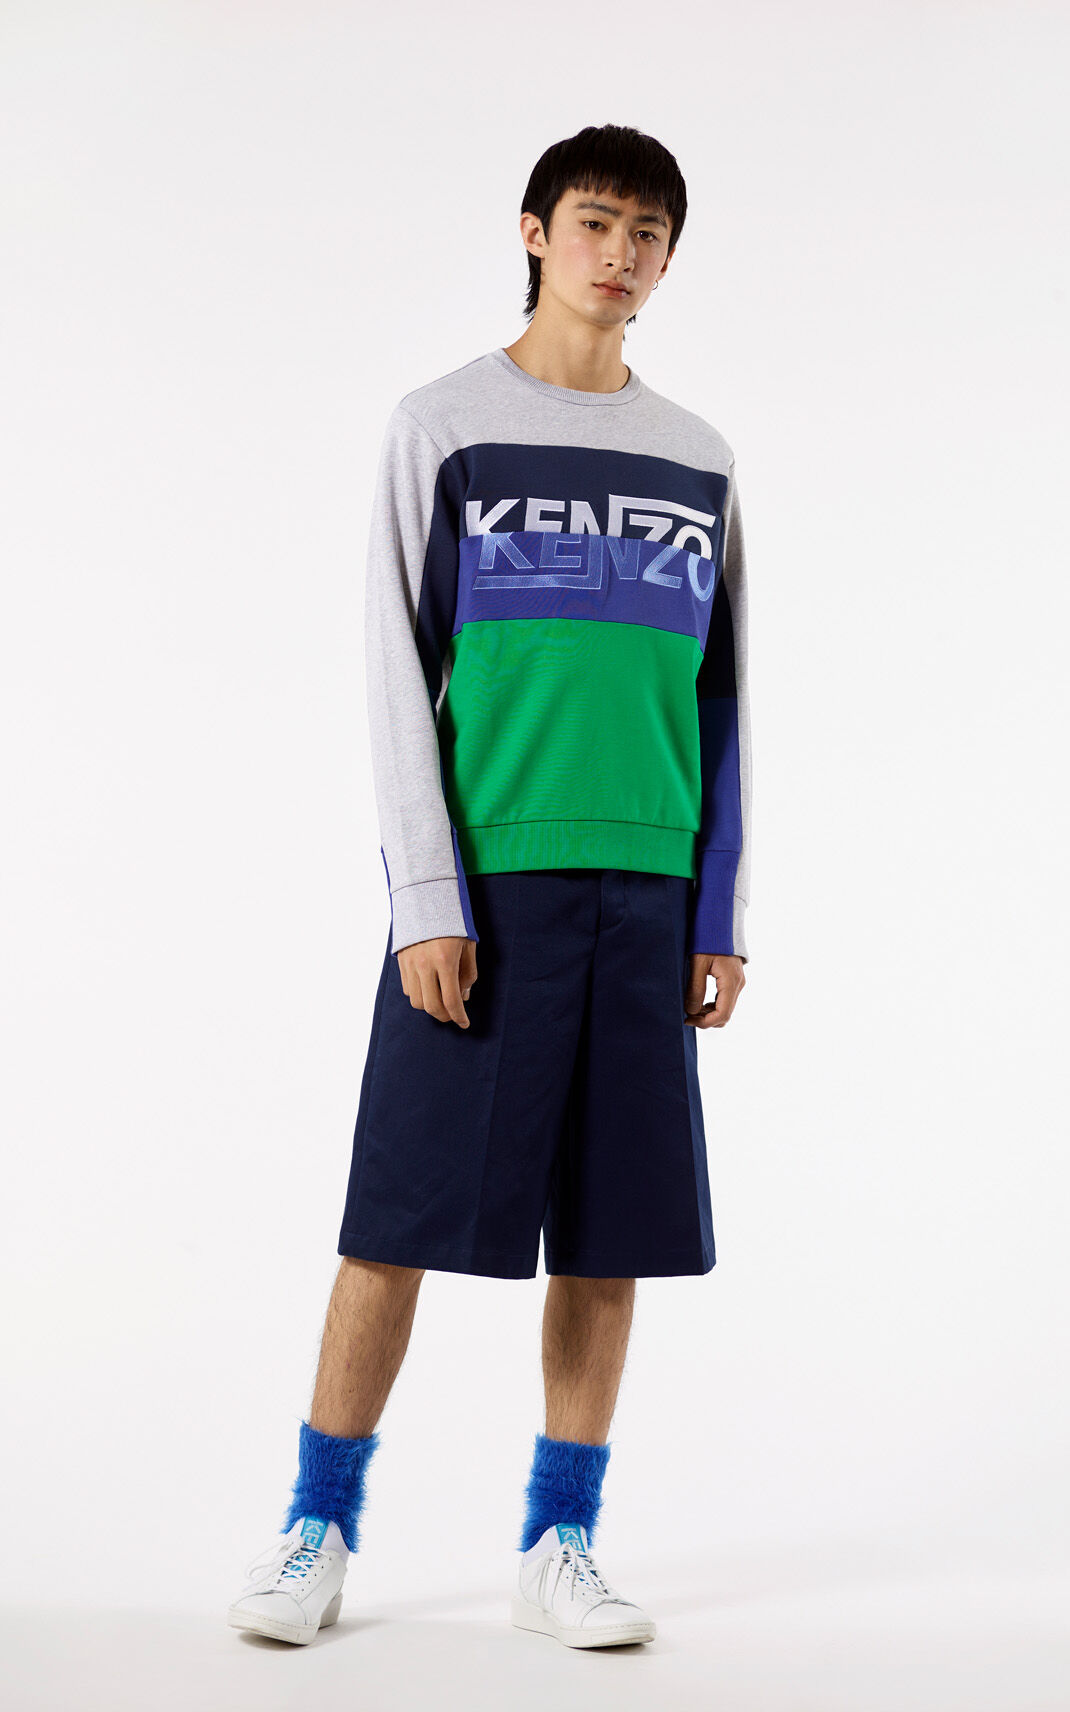 PALE GREY 'Hyper KENZO' sweatshirt for women